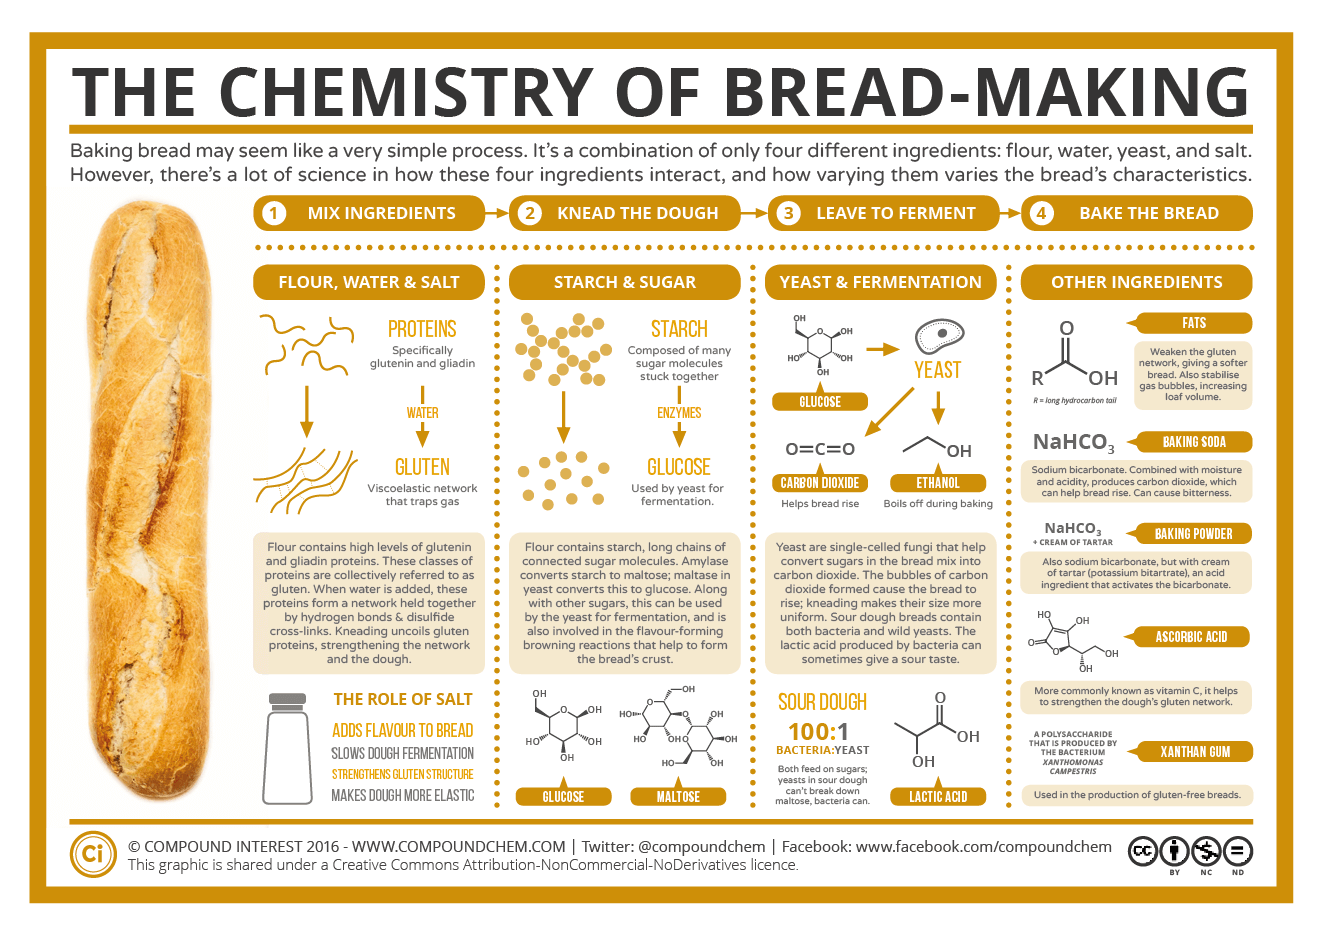 Baking Bread: The Chemistry of Bread-Making | Compound Interest